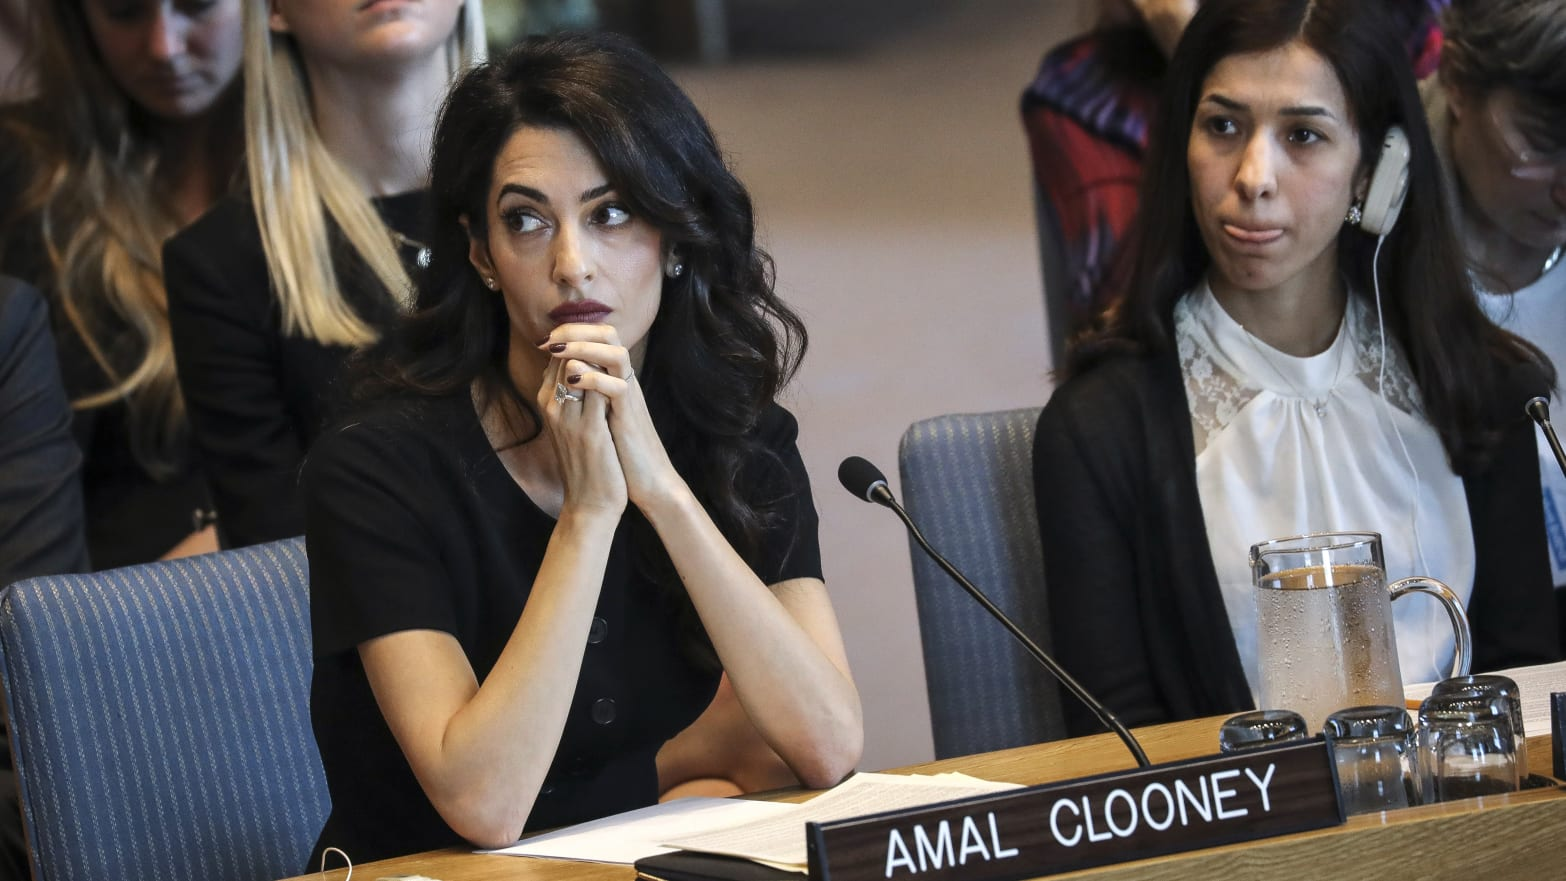 United Nations Security Council Caves to Trump Administration Threat and Cuts 'Reproductive Health' From Anti-Rape Resolution